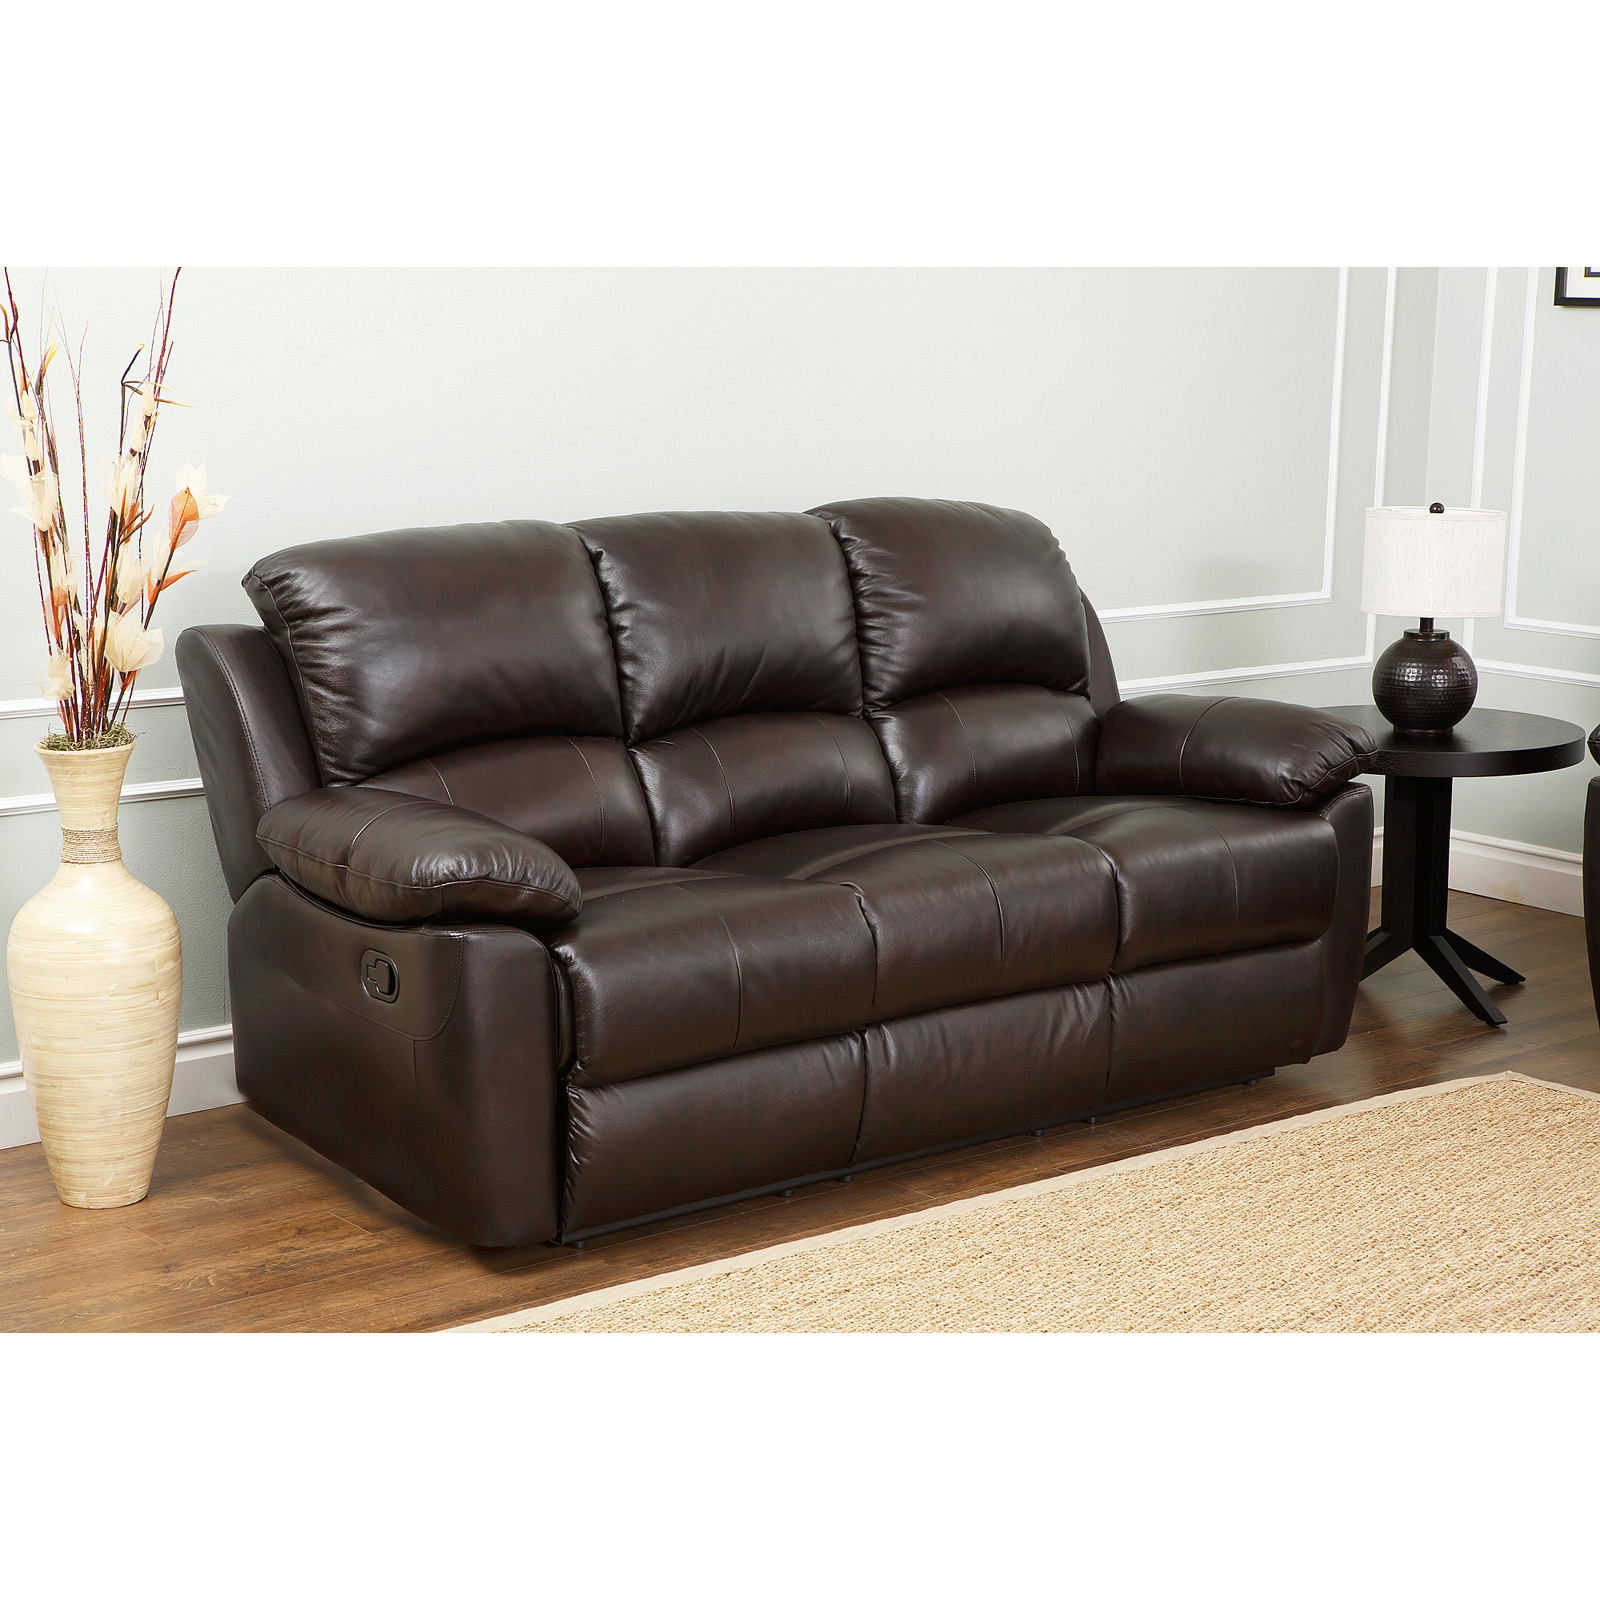 sc 1 st  Hayneedle & Abbyson Western Top Grain Leather Reclining Sofa - Brown | Hayneedle islam-shia.org